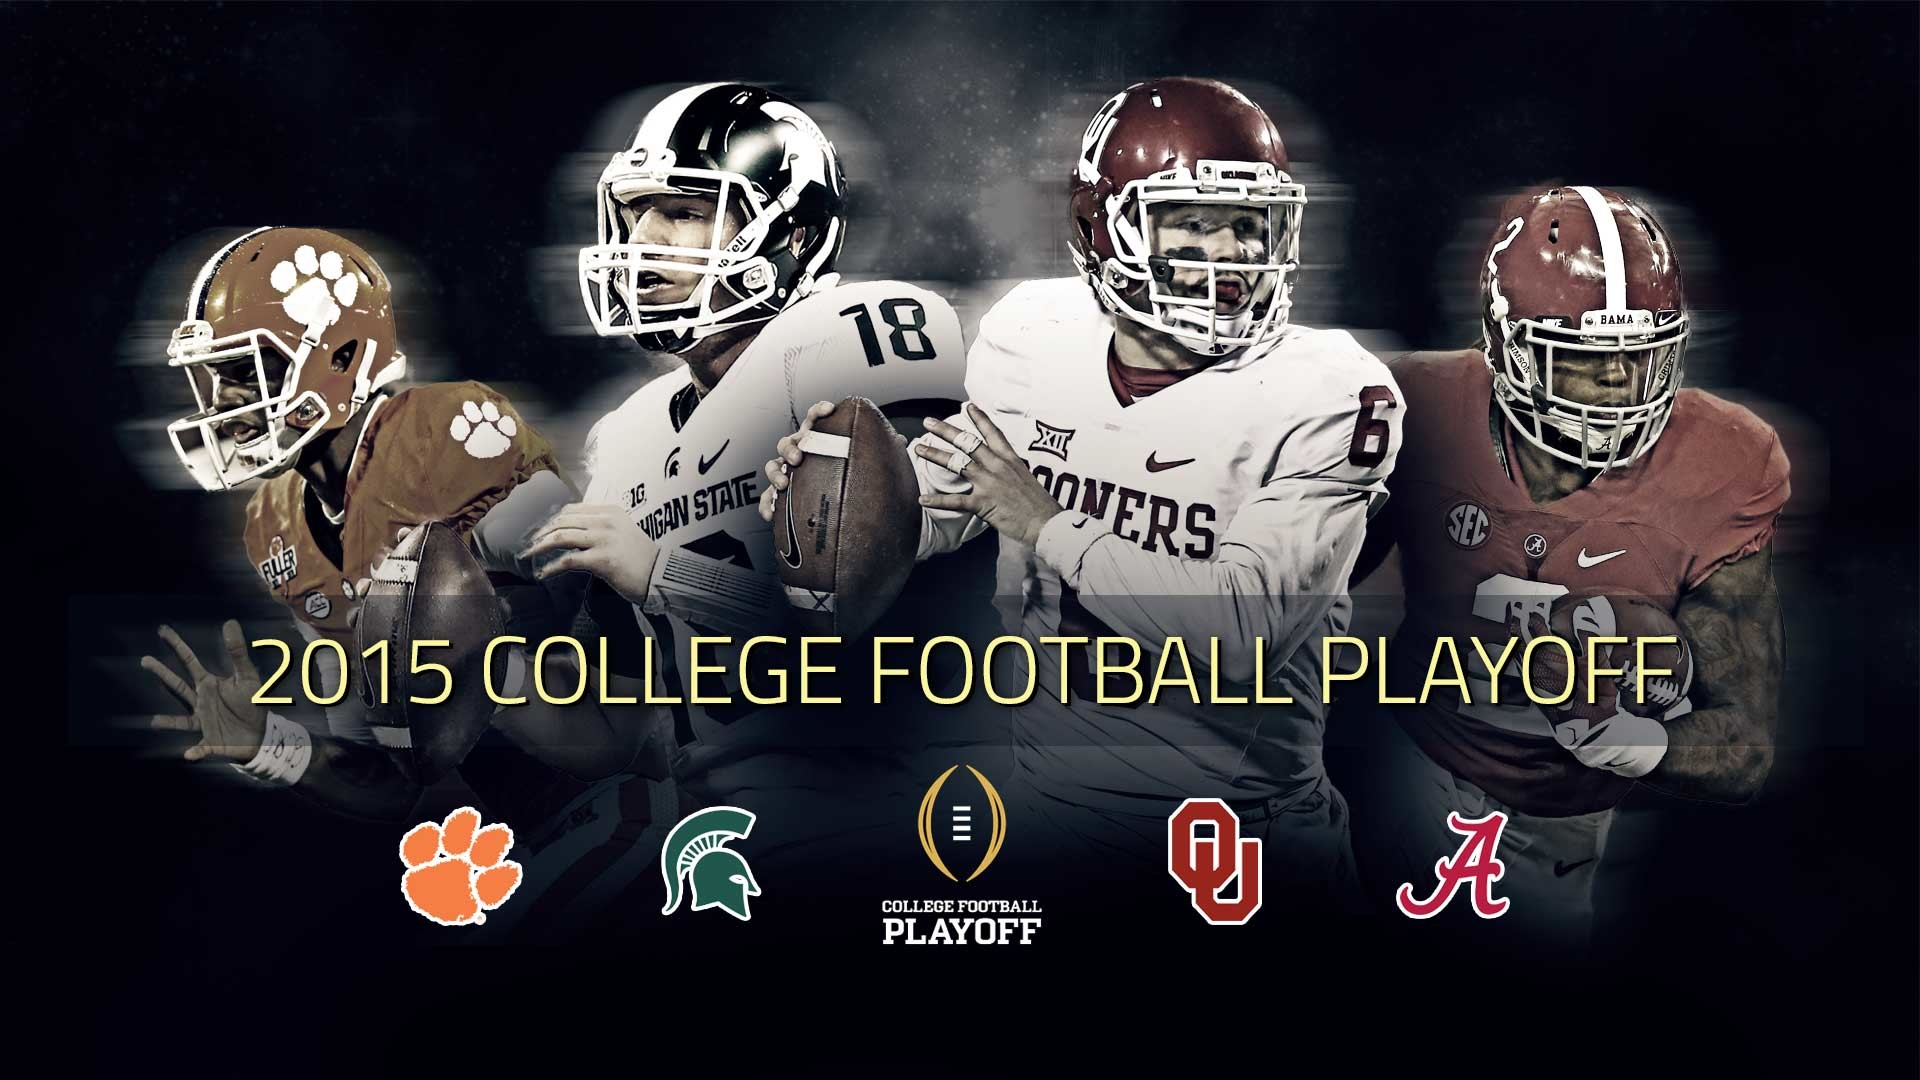 College Football Wallpaper (60+ images)